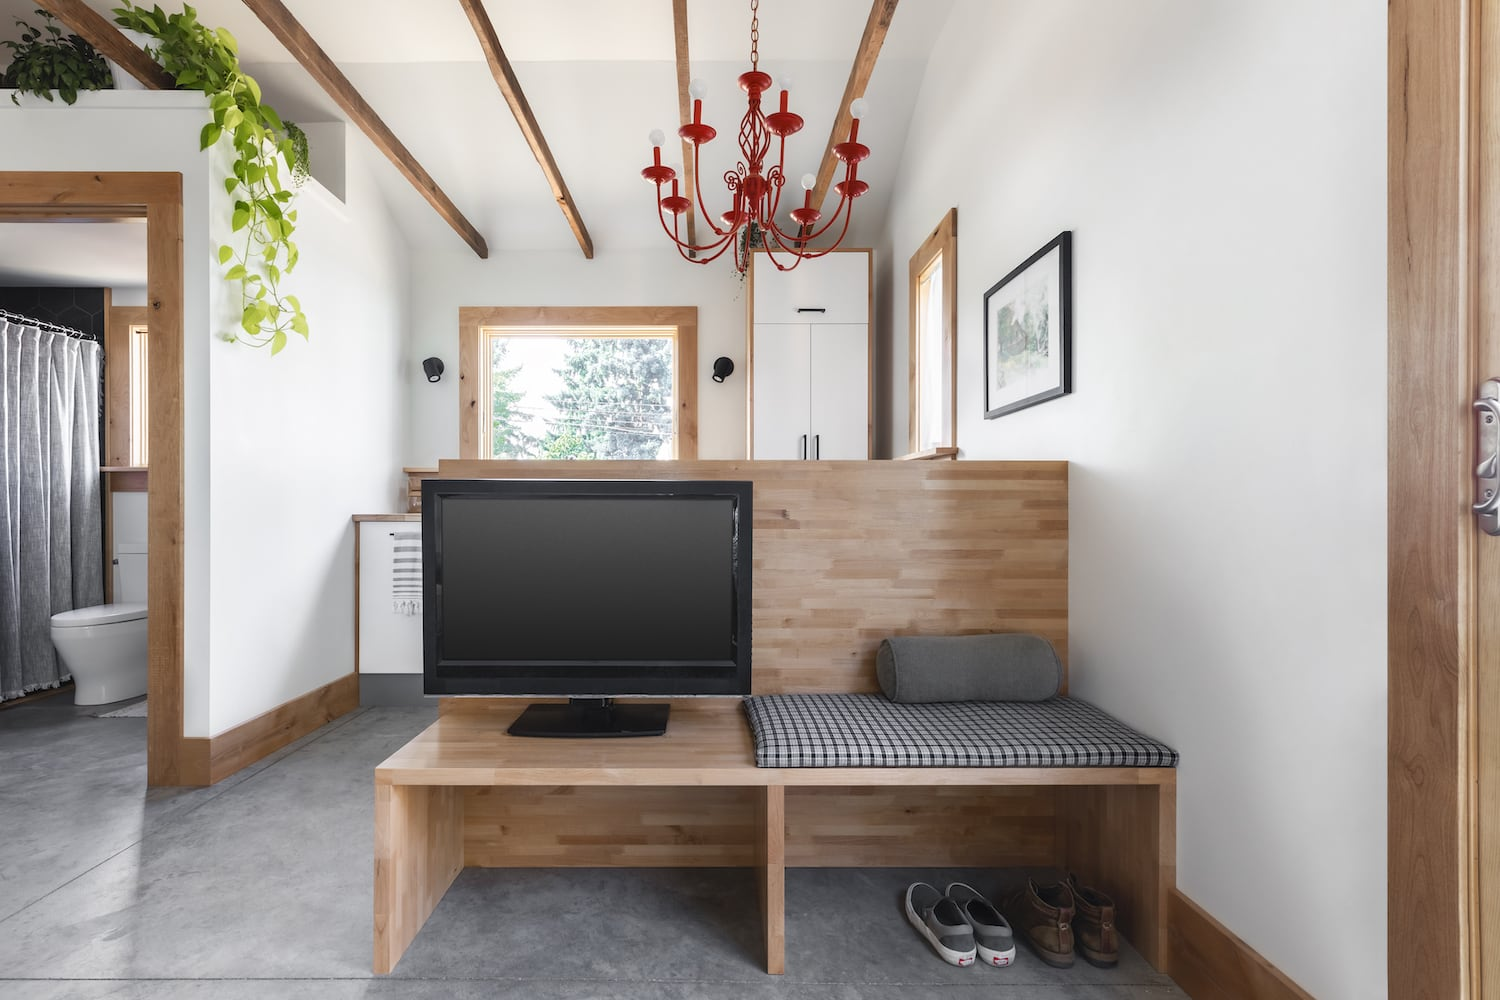 Custom TV station and mud space in re-designed garage conversion to ADU